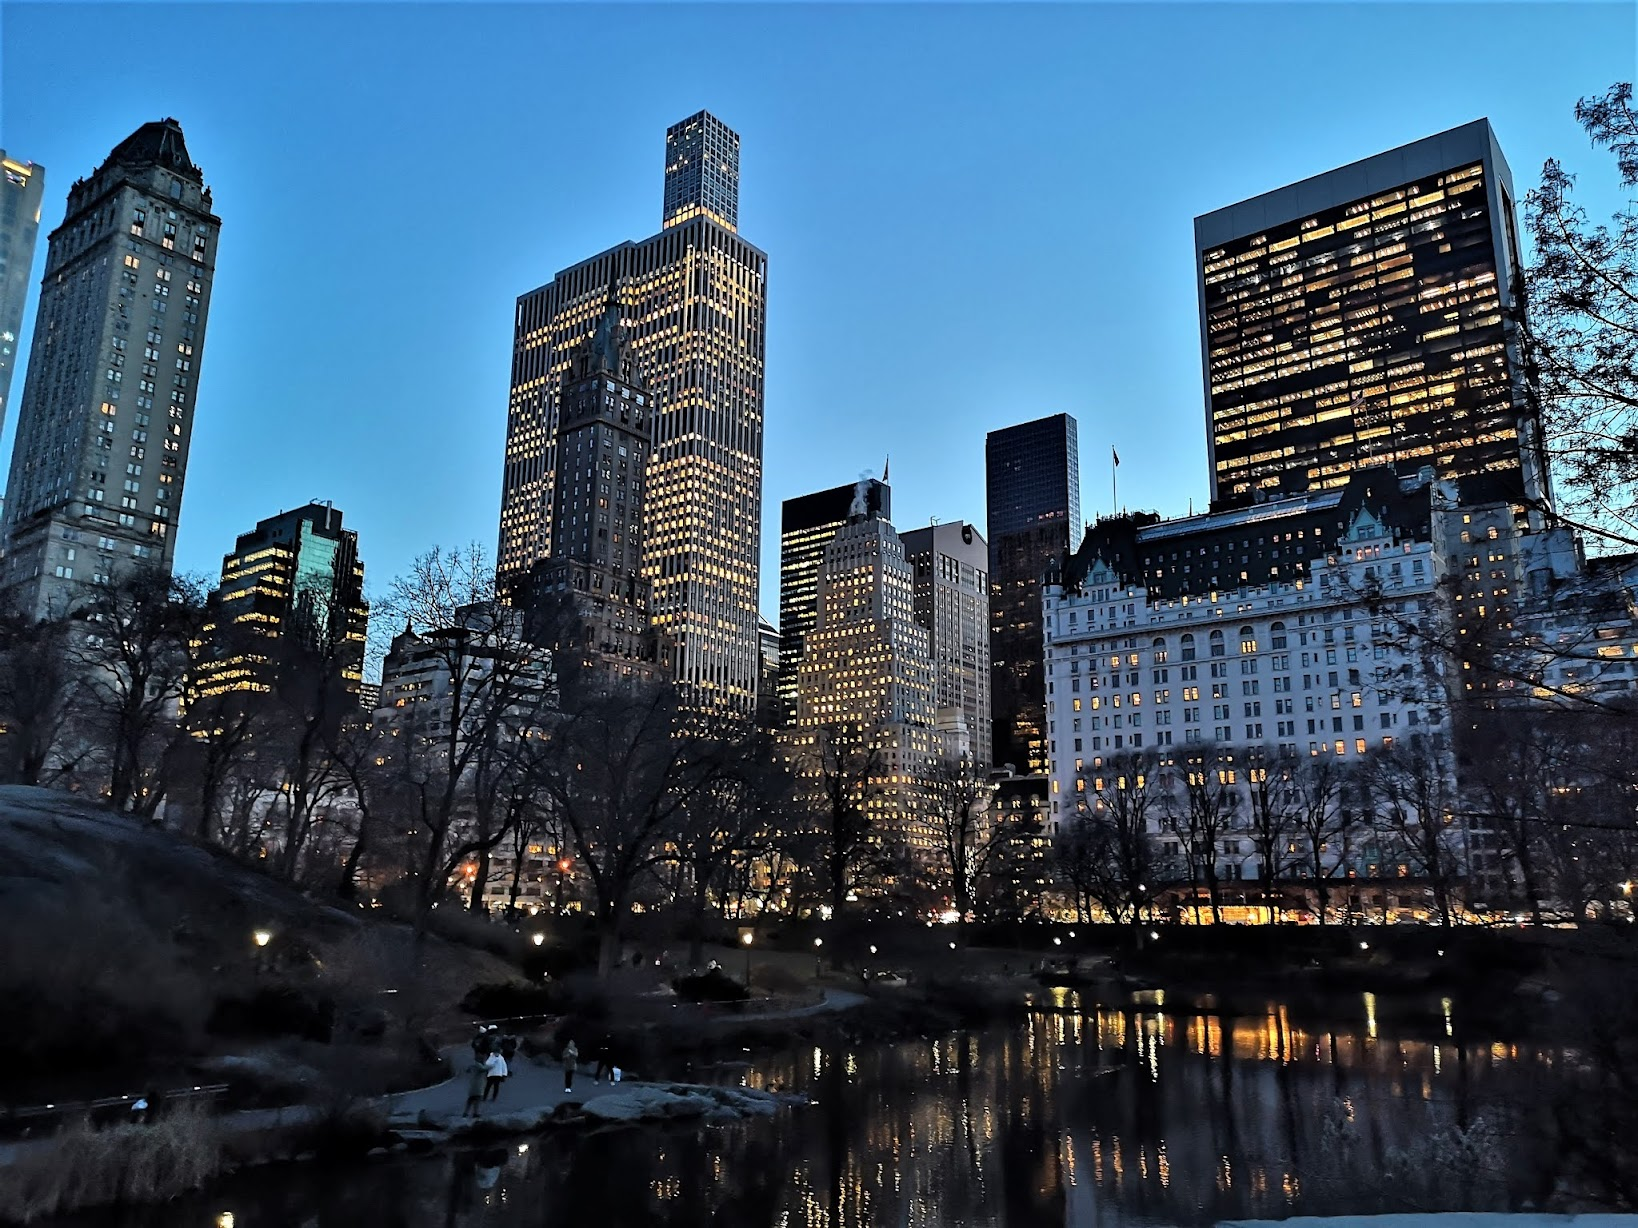 Central Park South skyscrapers, New York City